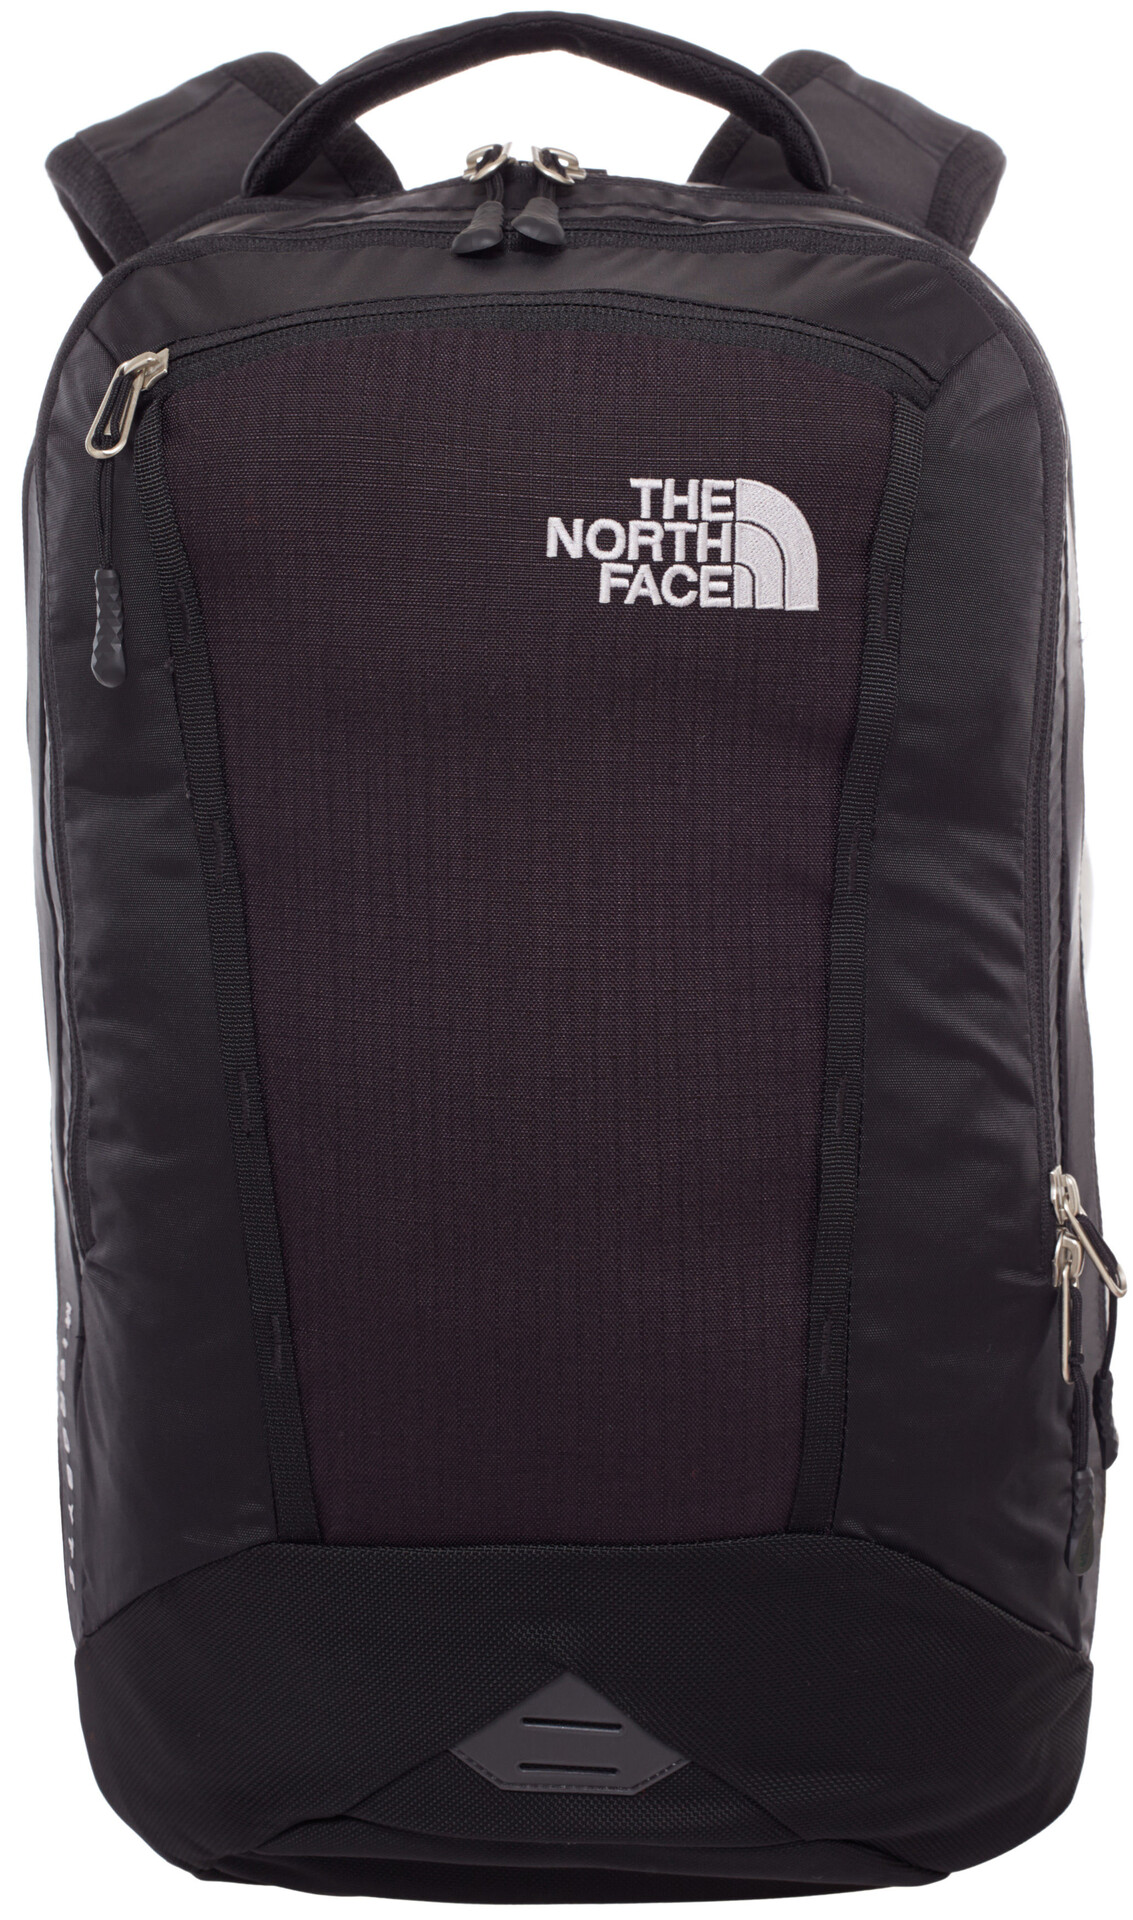 The Face Negro Mochila Microbyte North sQtBdrxhC